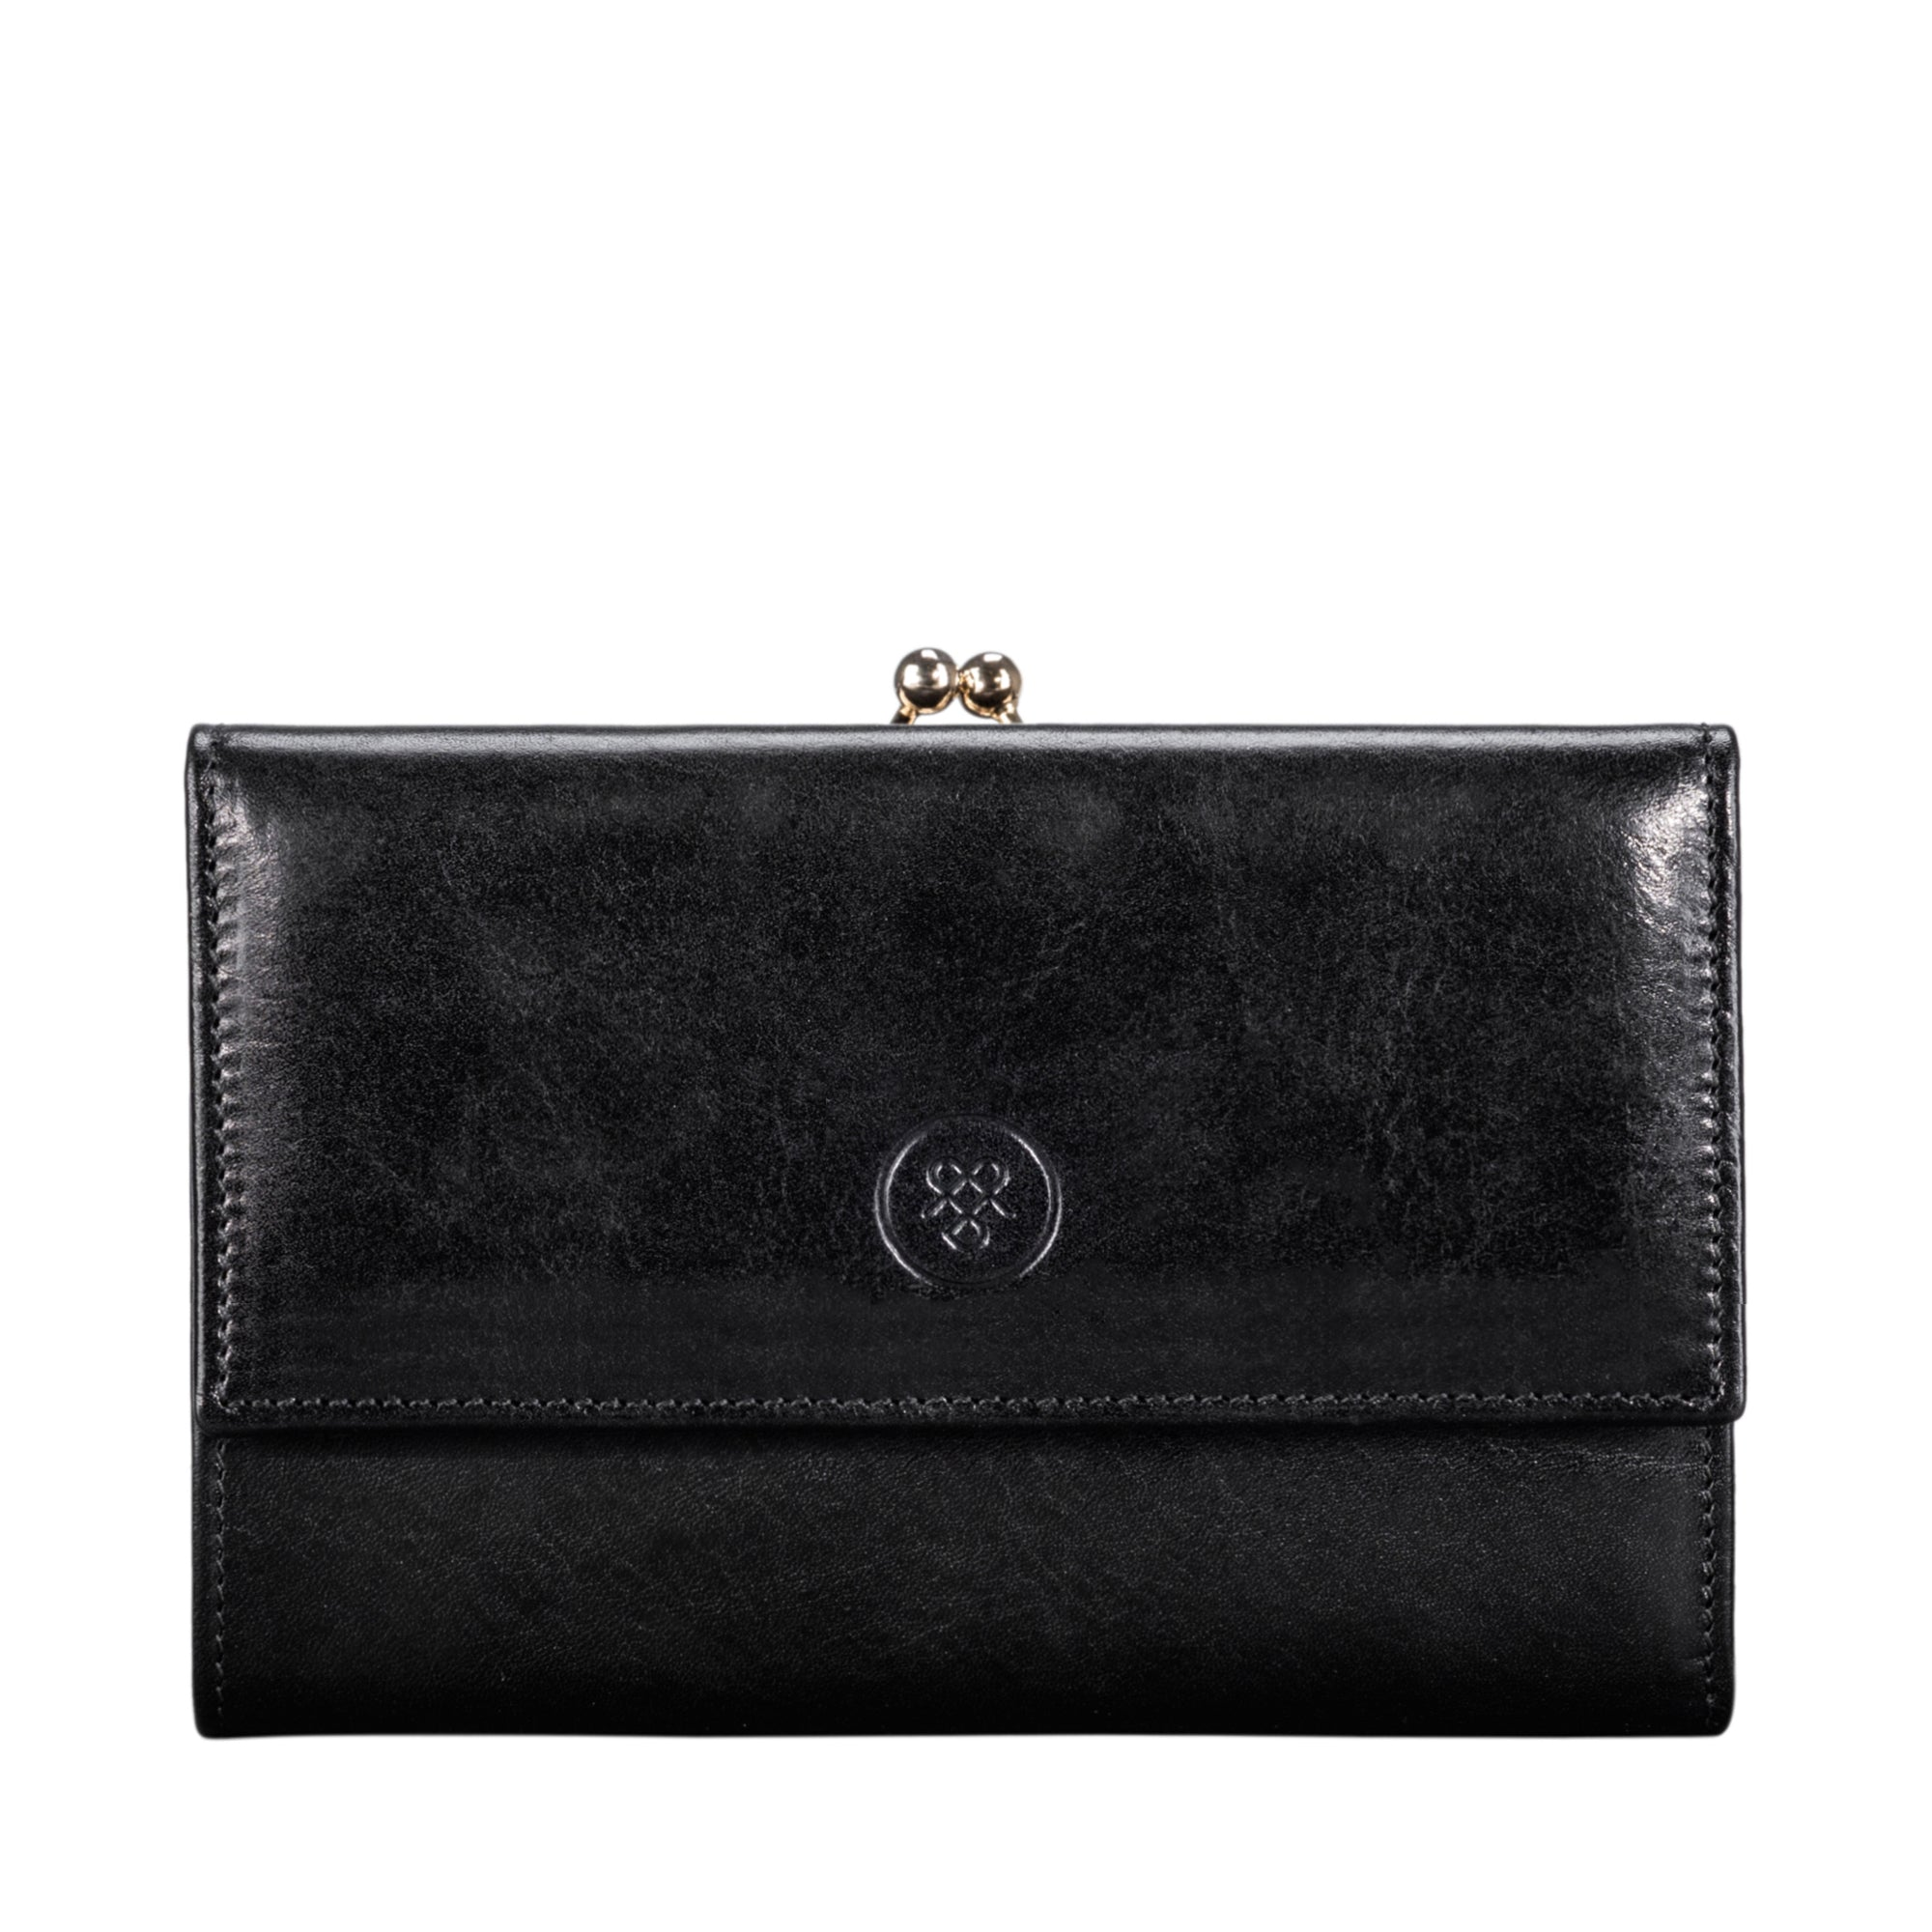 Image 1 of the 'Marcialla' Large Black Veg-Tanned Leather Italian Purse